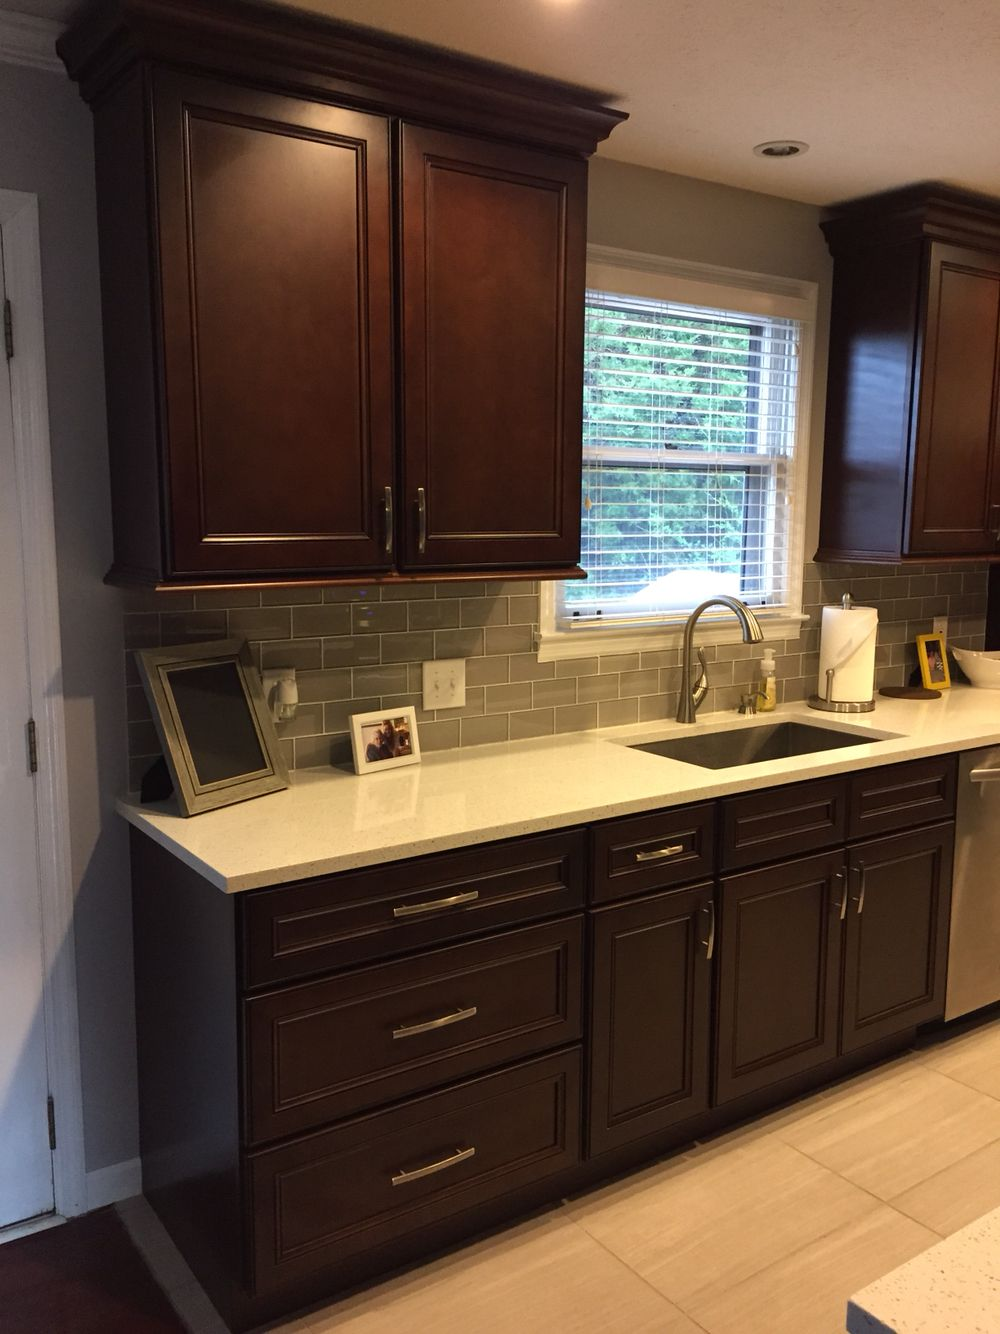 Lily Ann Cabinets York Chocolate Cabinets Http Www Lilyanncabinets Com York Chocolate Kitche Dark Wood Furniture Decor Dark Wood Furniture Kitchen Cabinets